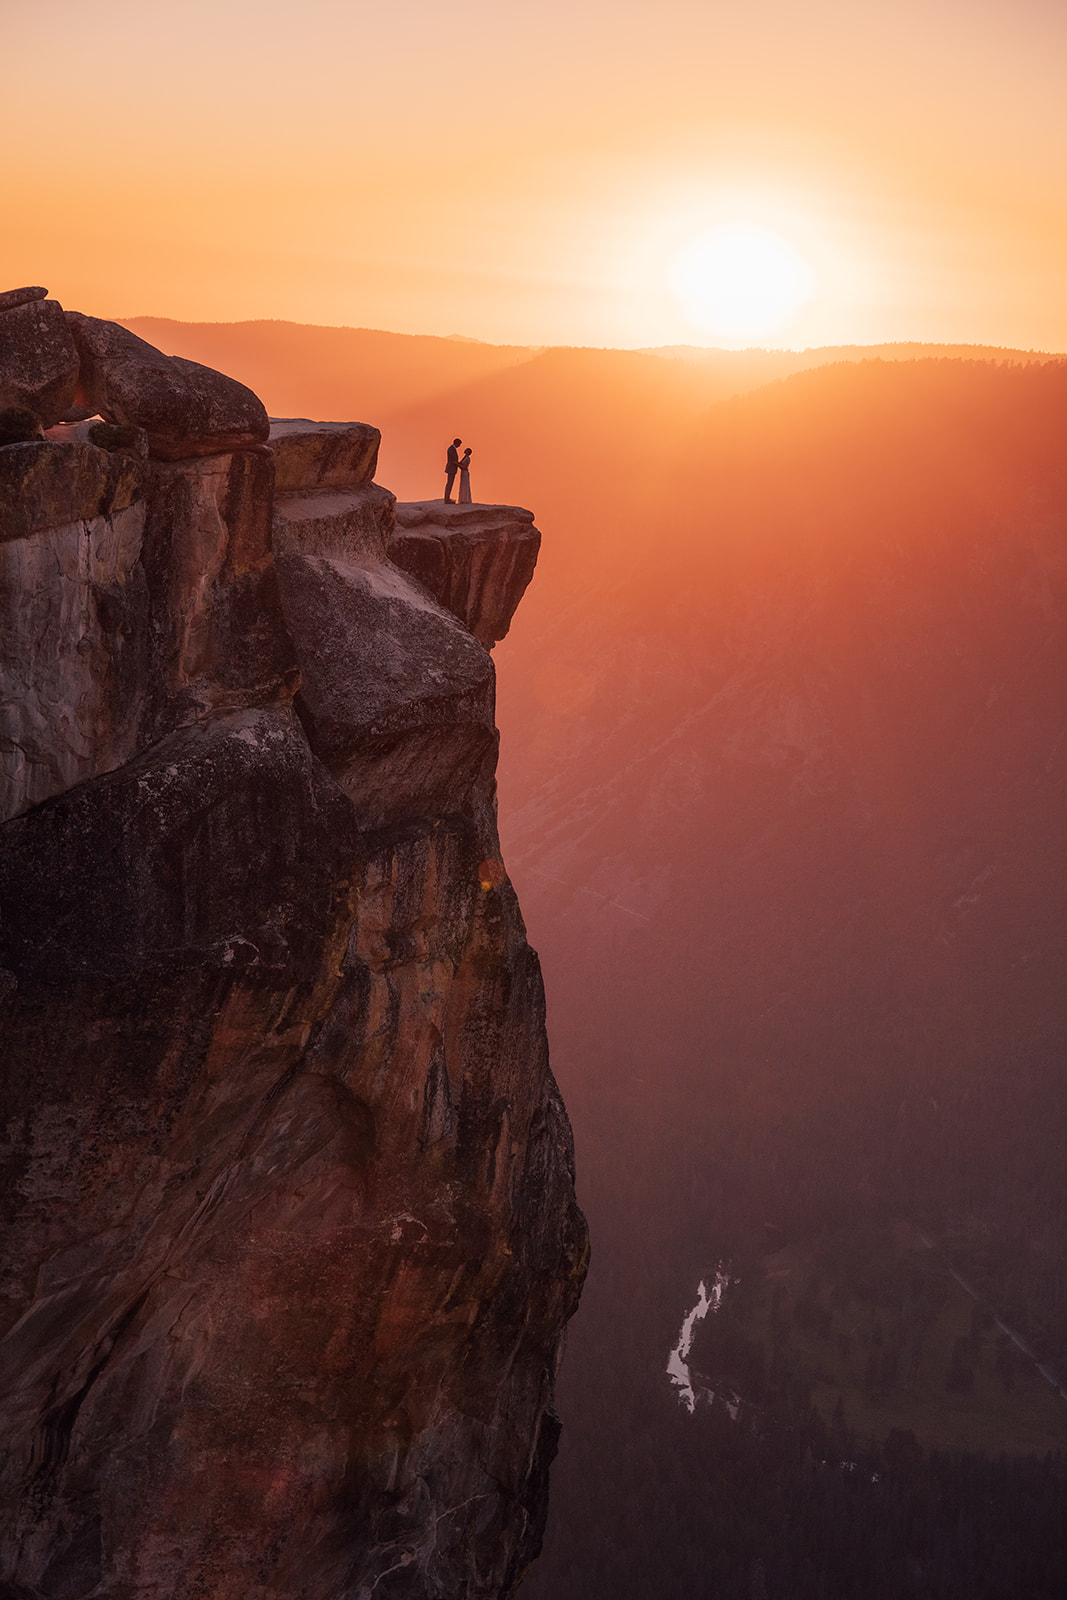 couple-cliff-yosemite-sunset